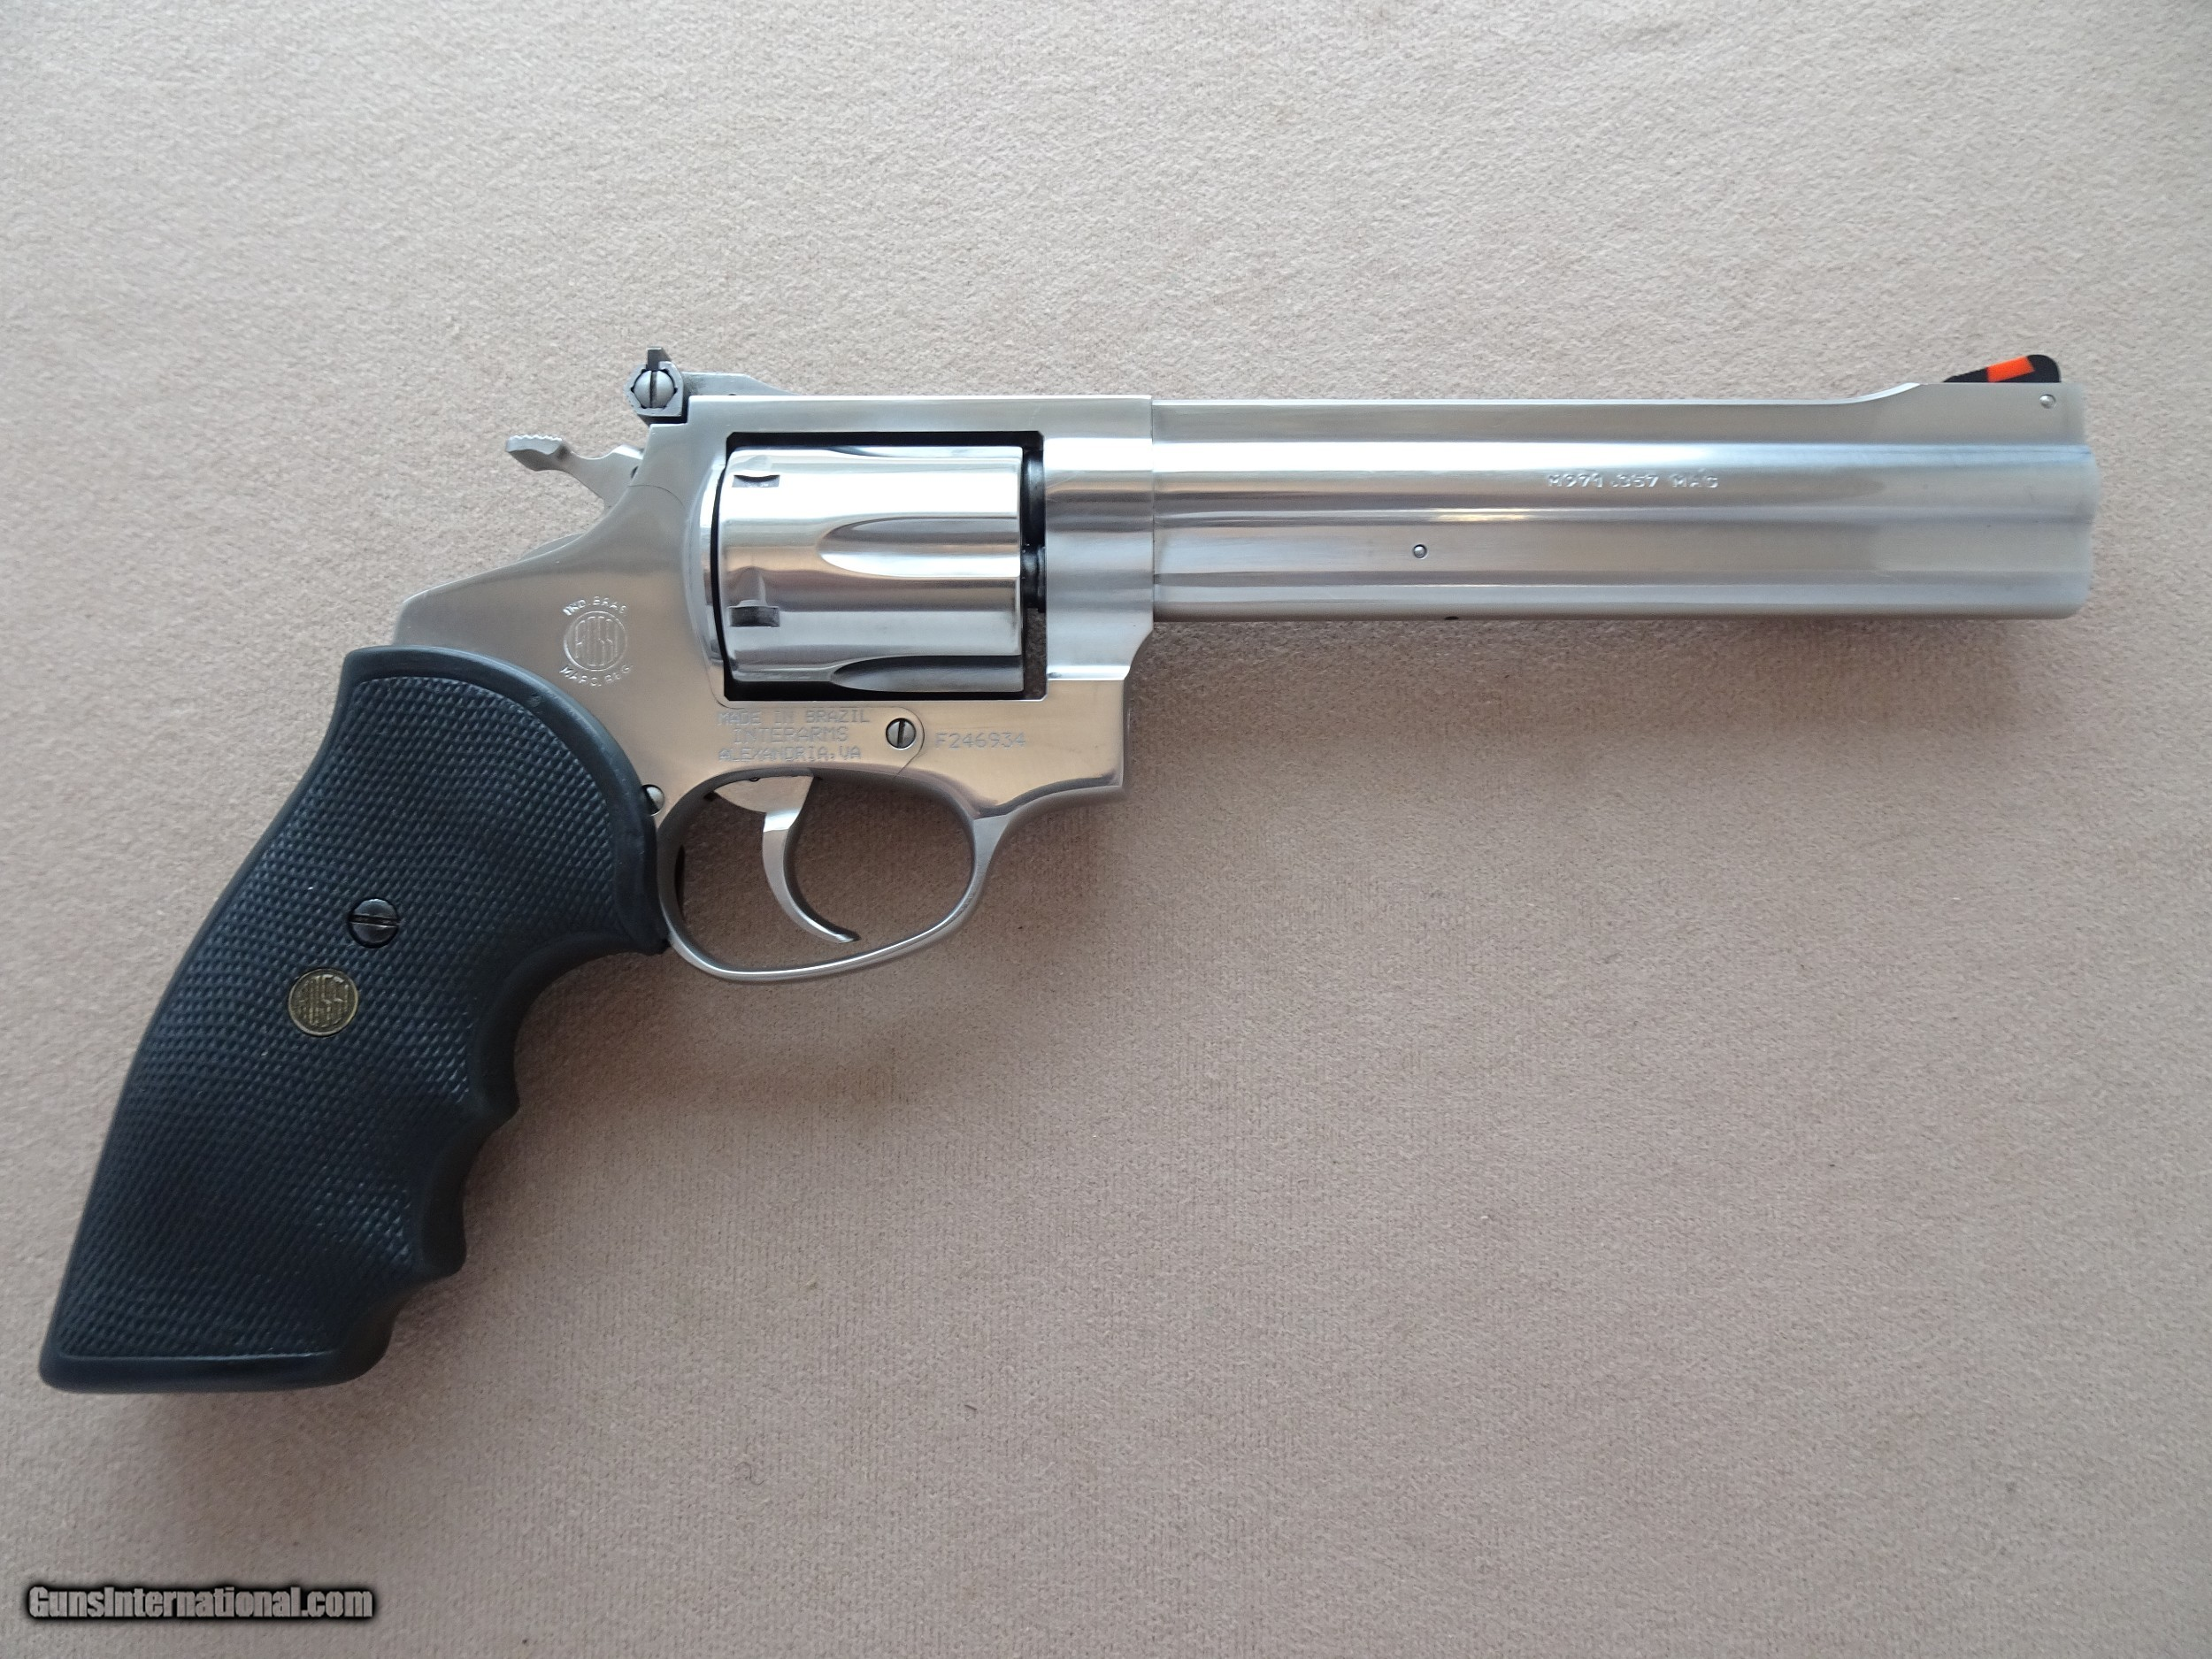 Rossi Model 971 Stainless Steel  357 Magnum Revolver w/ 6